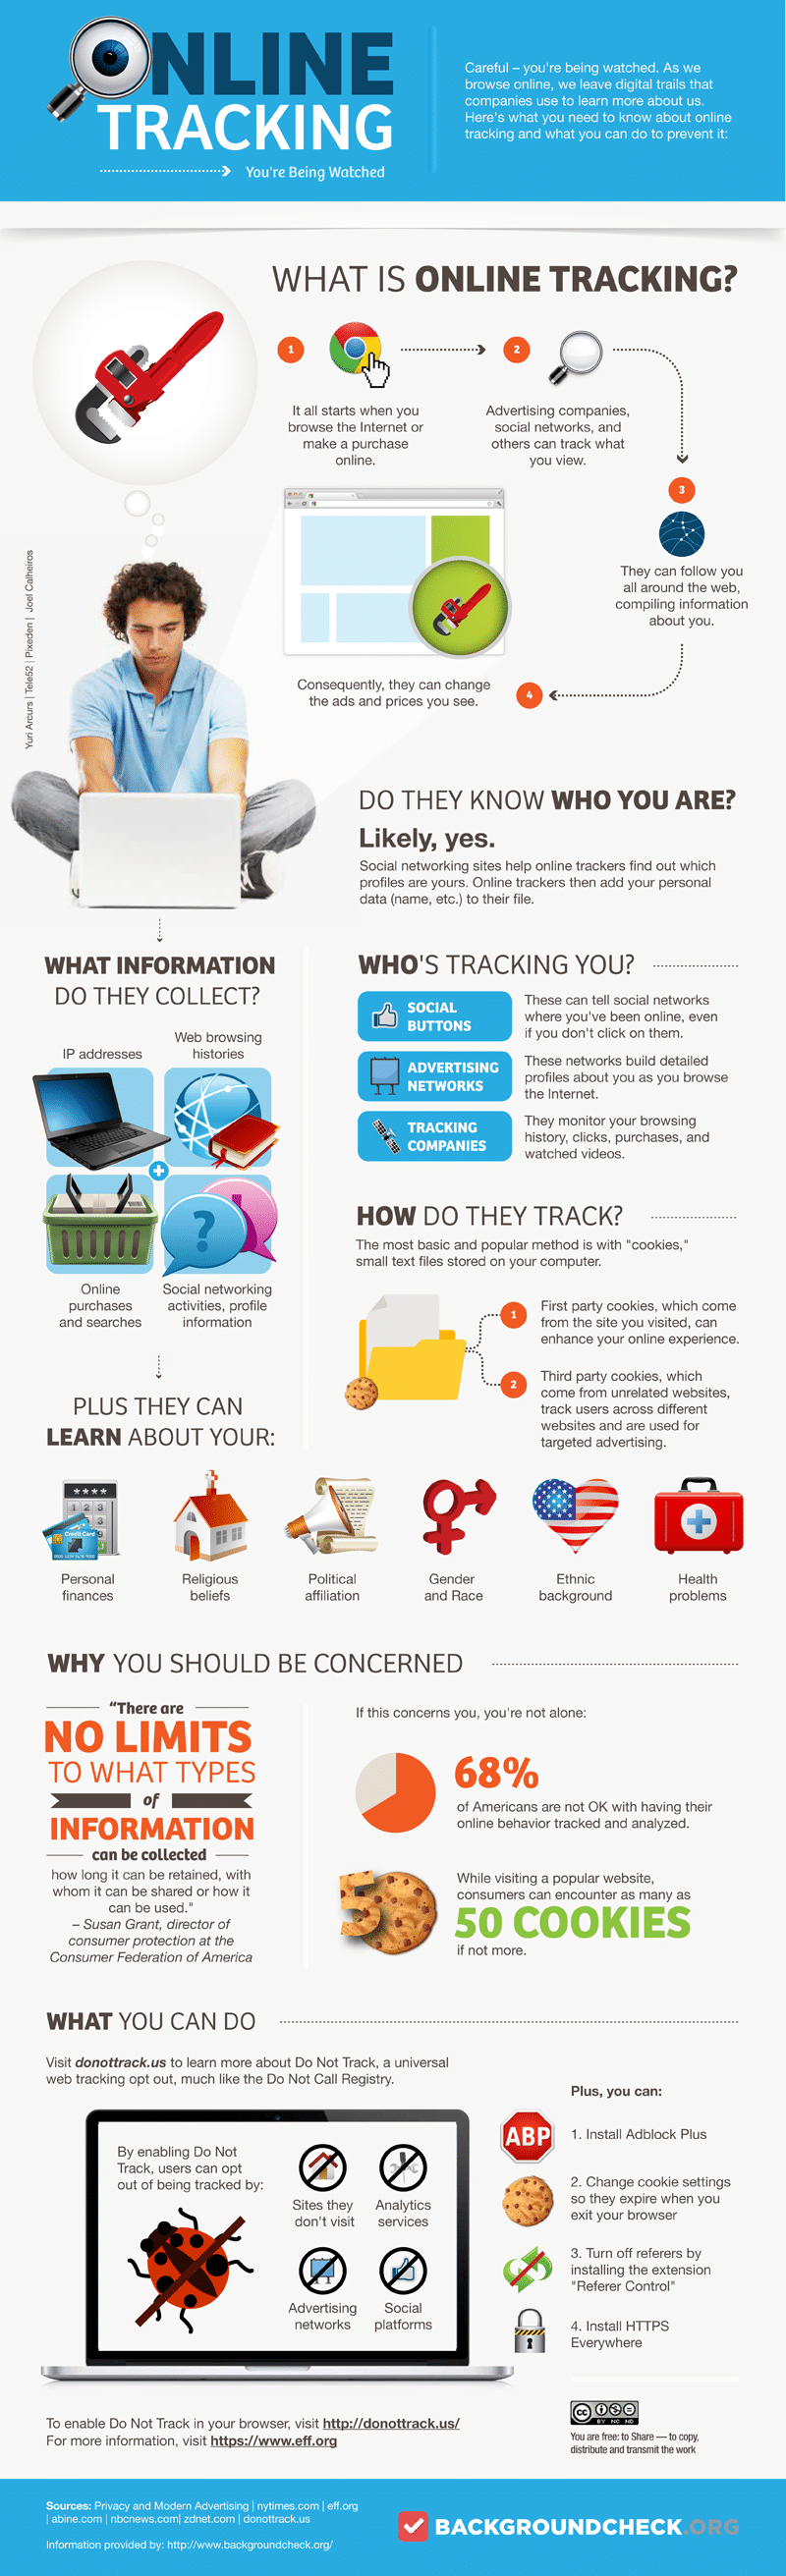 Online Tracking: The Things You Didn't Know [Infographic]